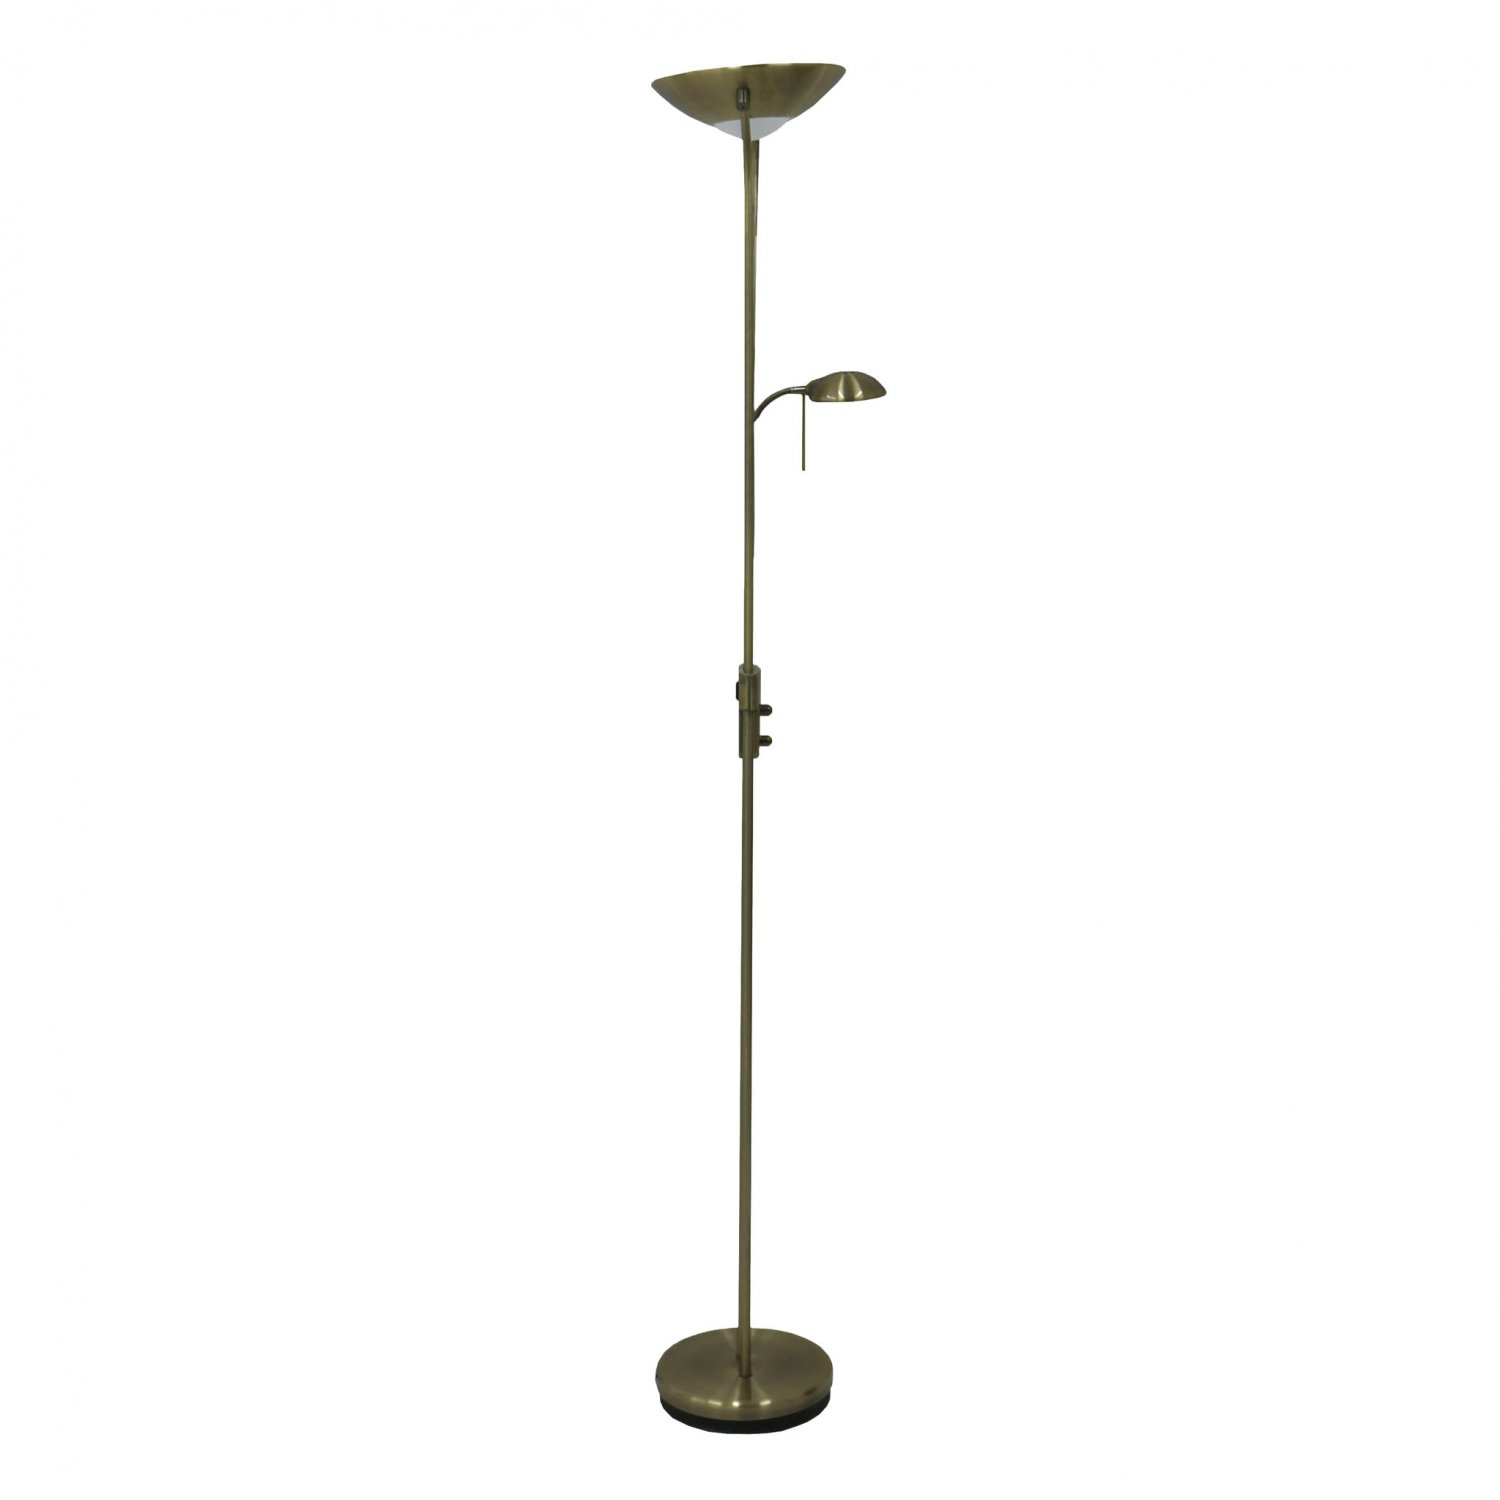 Brass Mother Amp Child Floor Standing Uplighter Lamp Reading Light 163 36 99 Oypla Stocking The